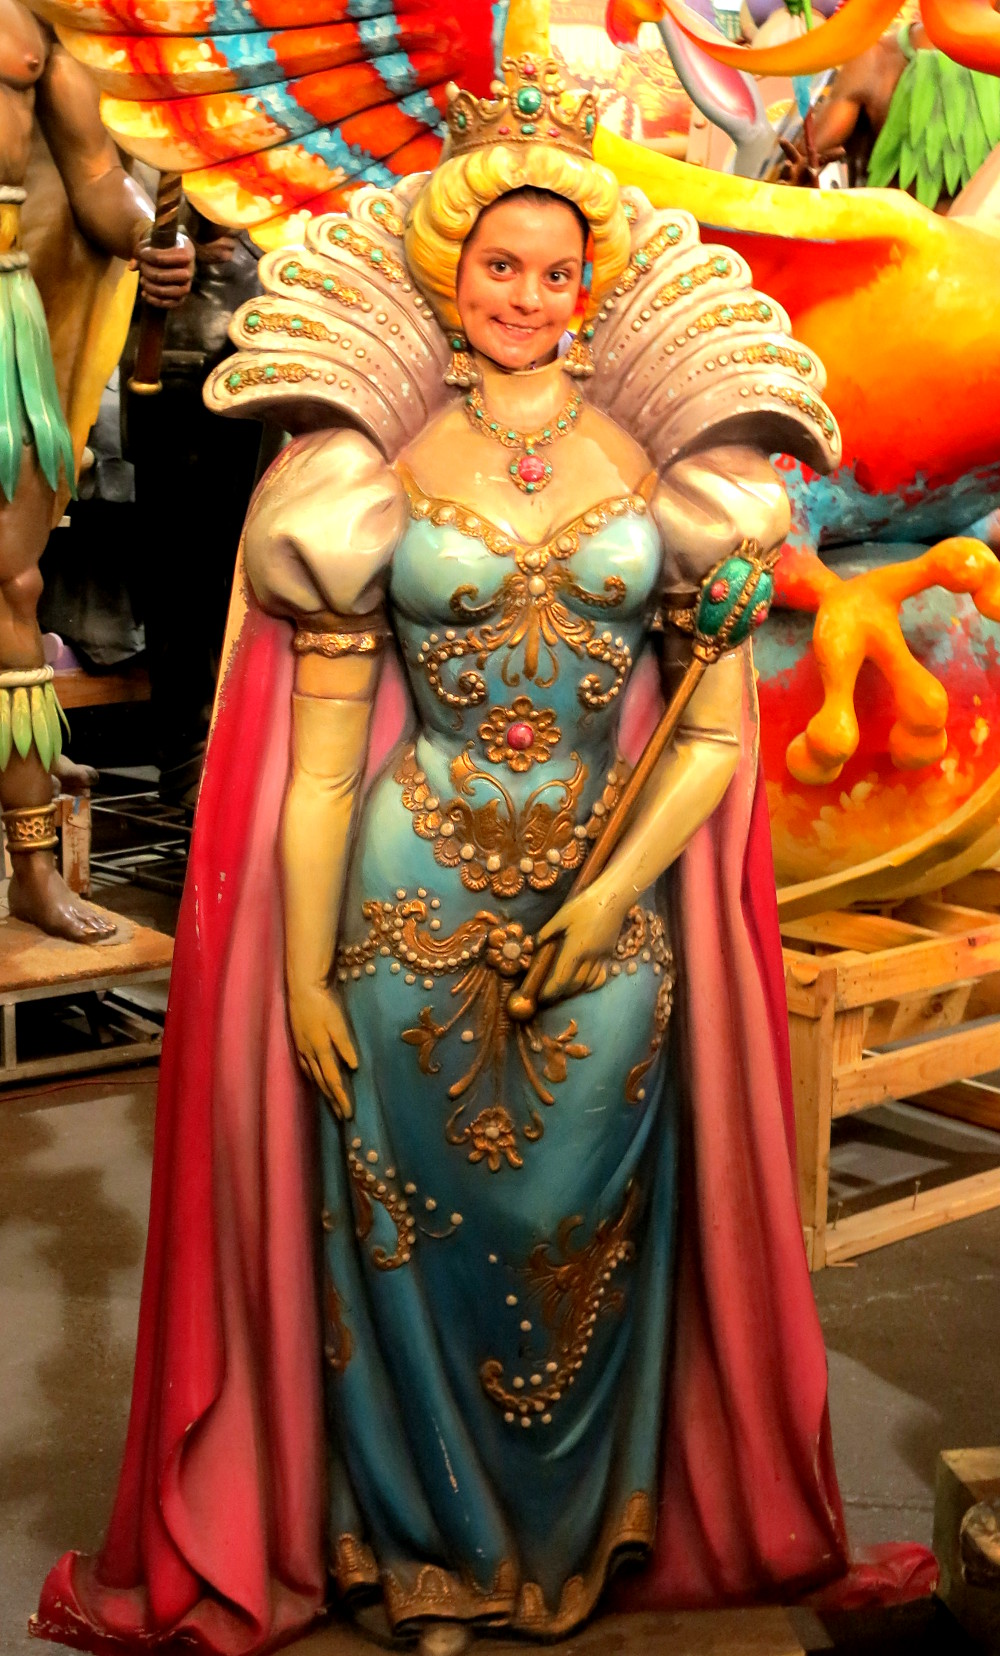 Carmen as a jester at Mardi Gras World New Orleans Double-Barrelled Travel